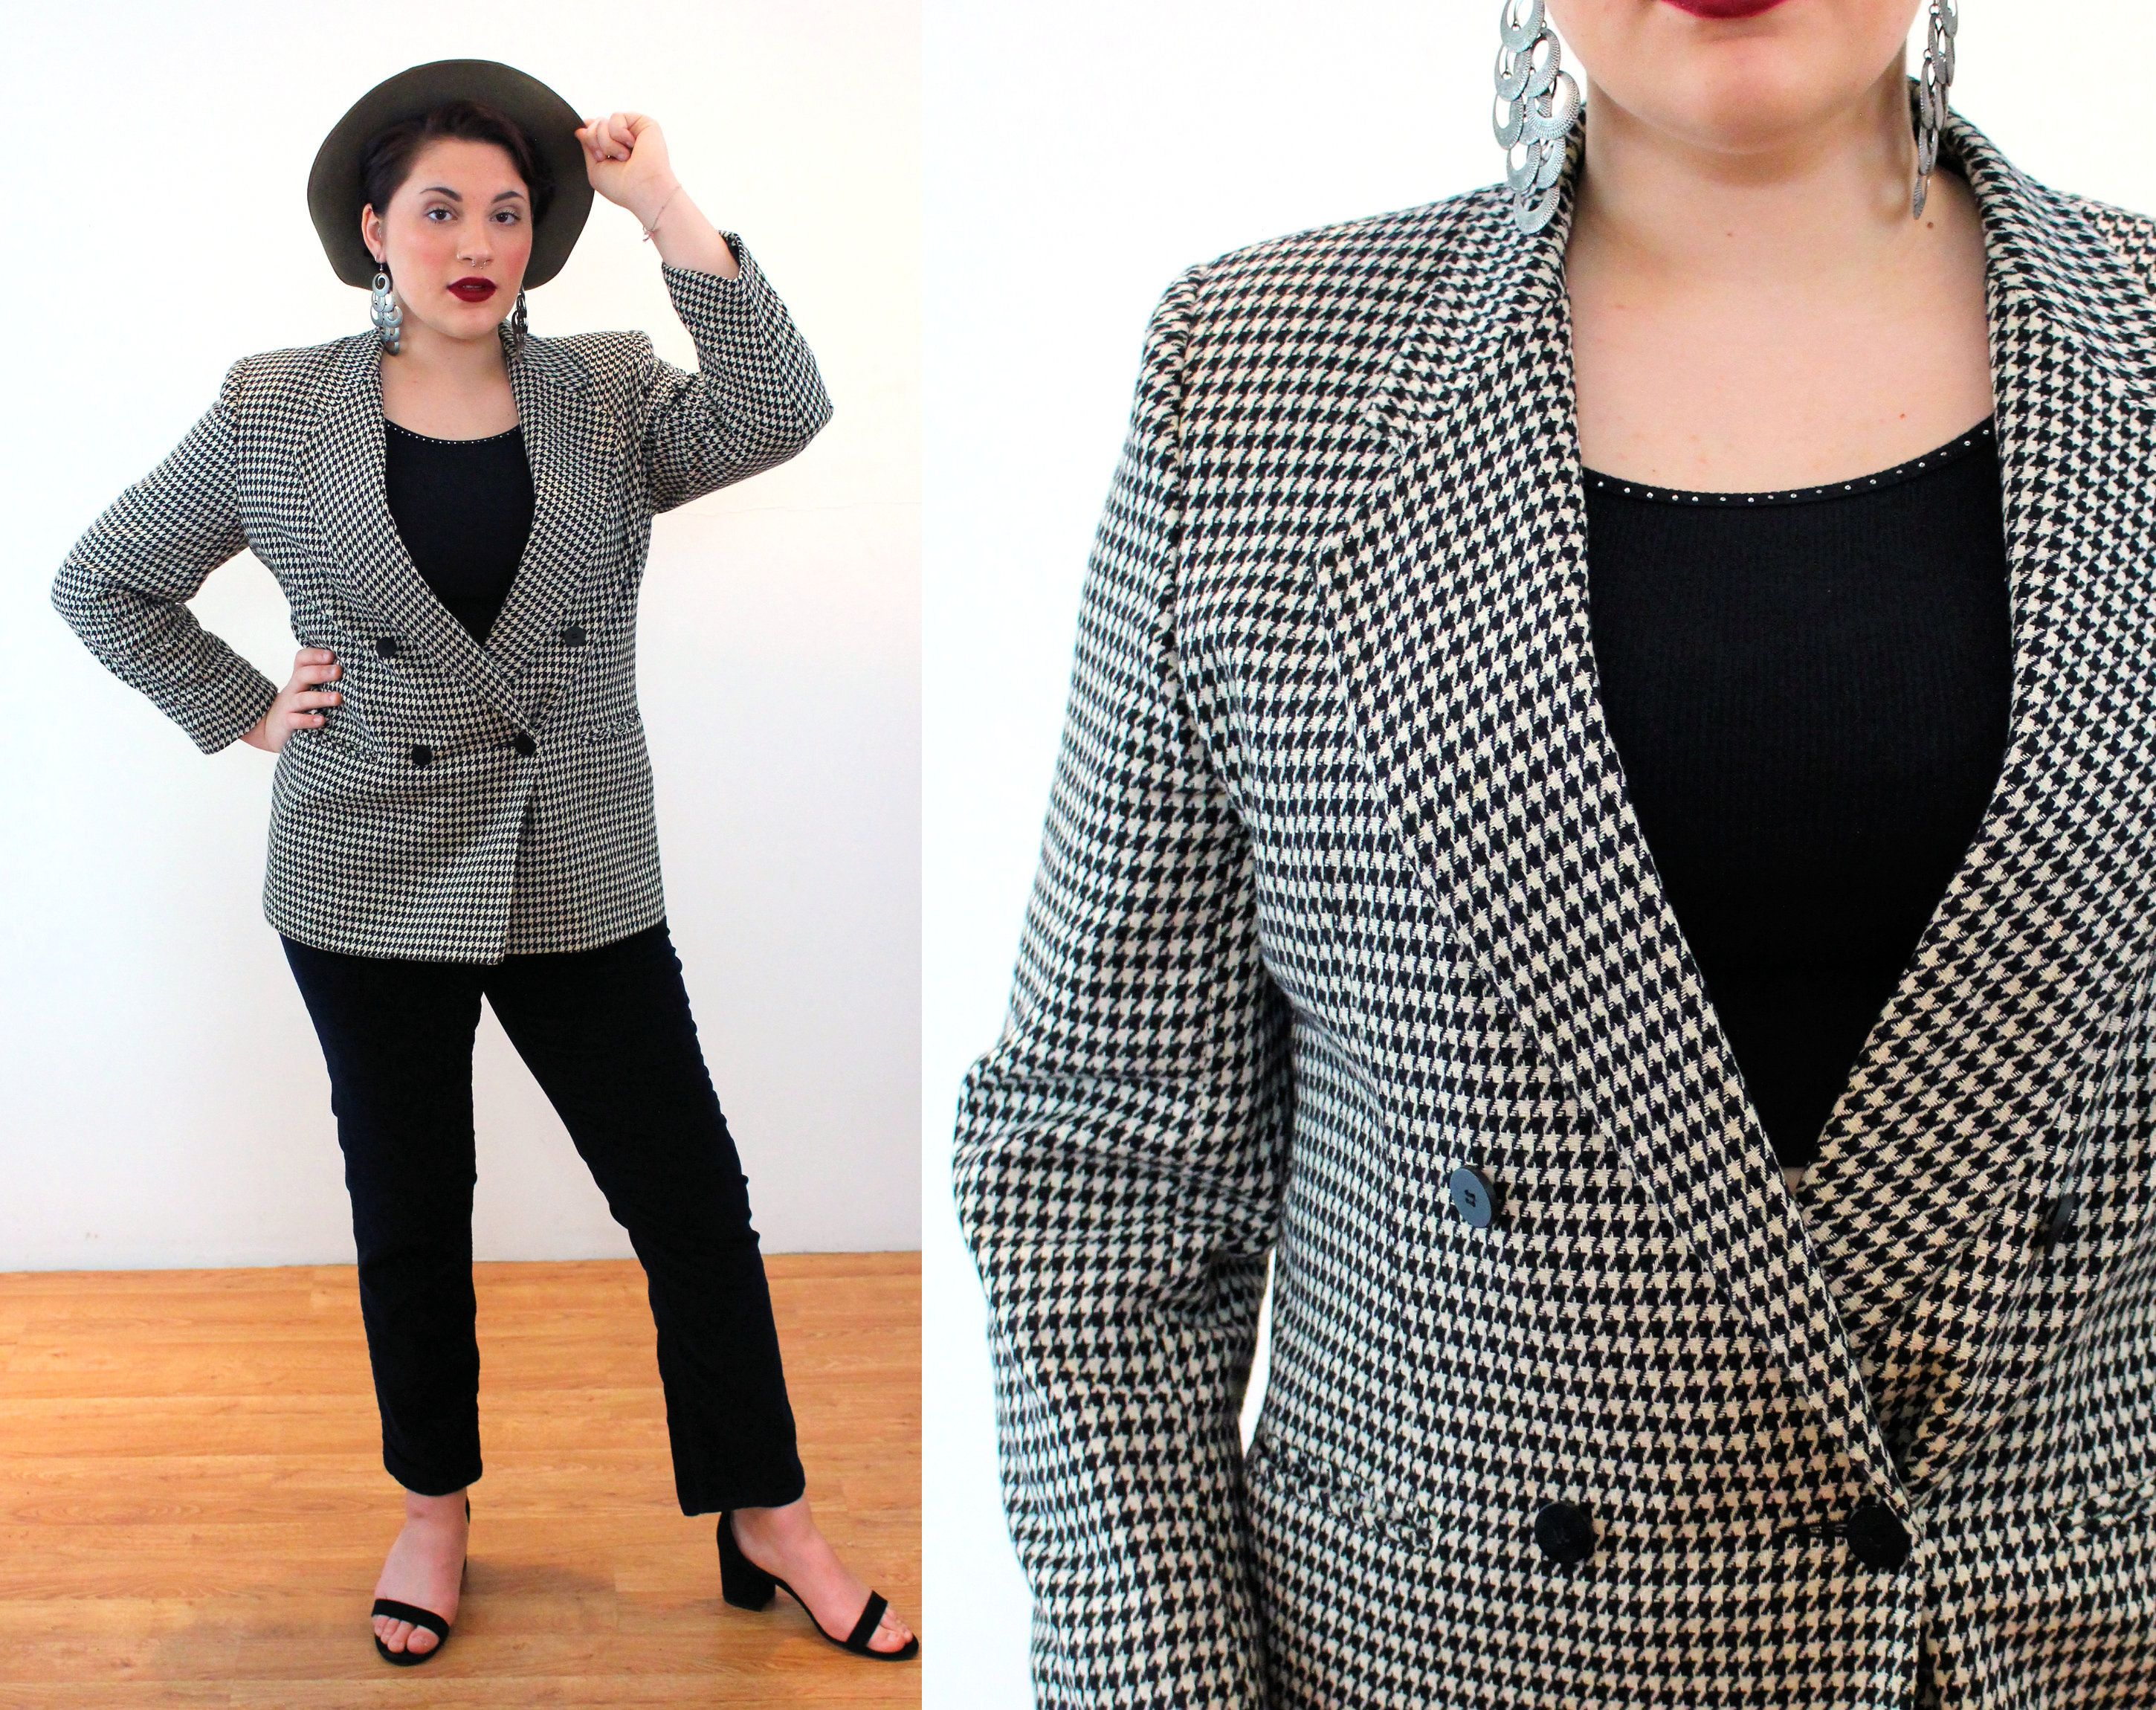 White Brown Checkered Jacket Women Jacket  Houndstooth Pattern Blazer  Button Up Business Jacket  Vintage 90s style  Padded Shoulders